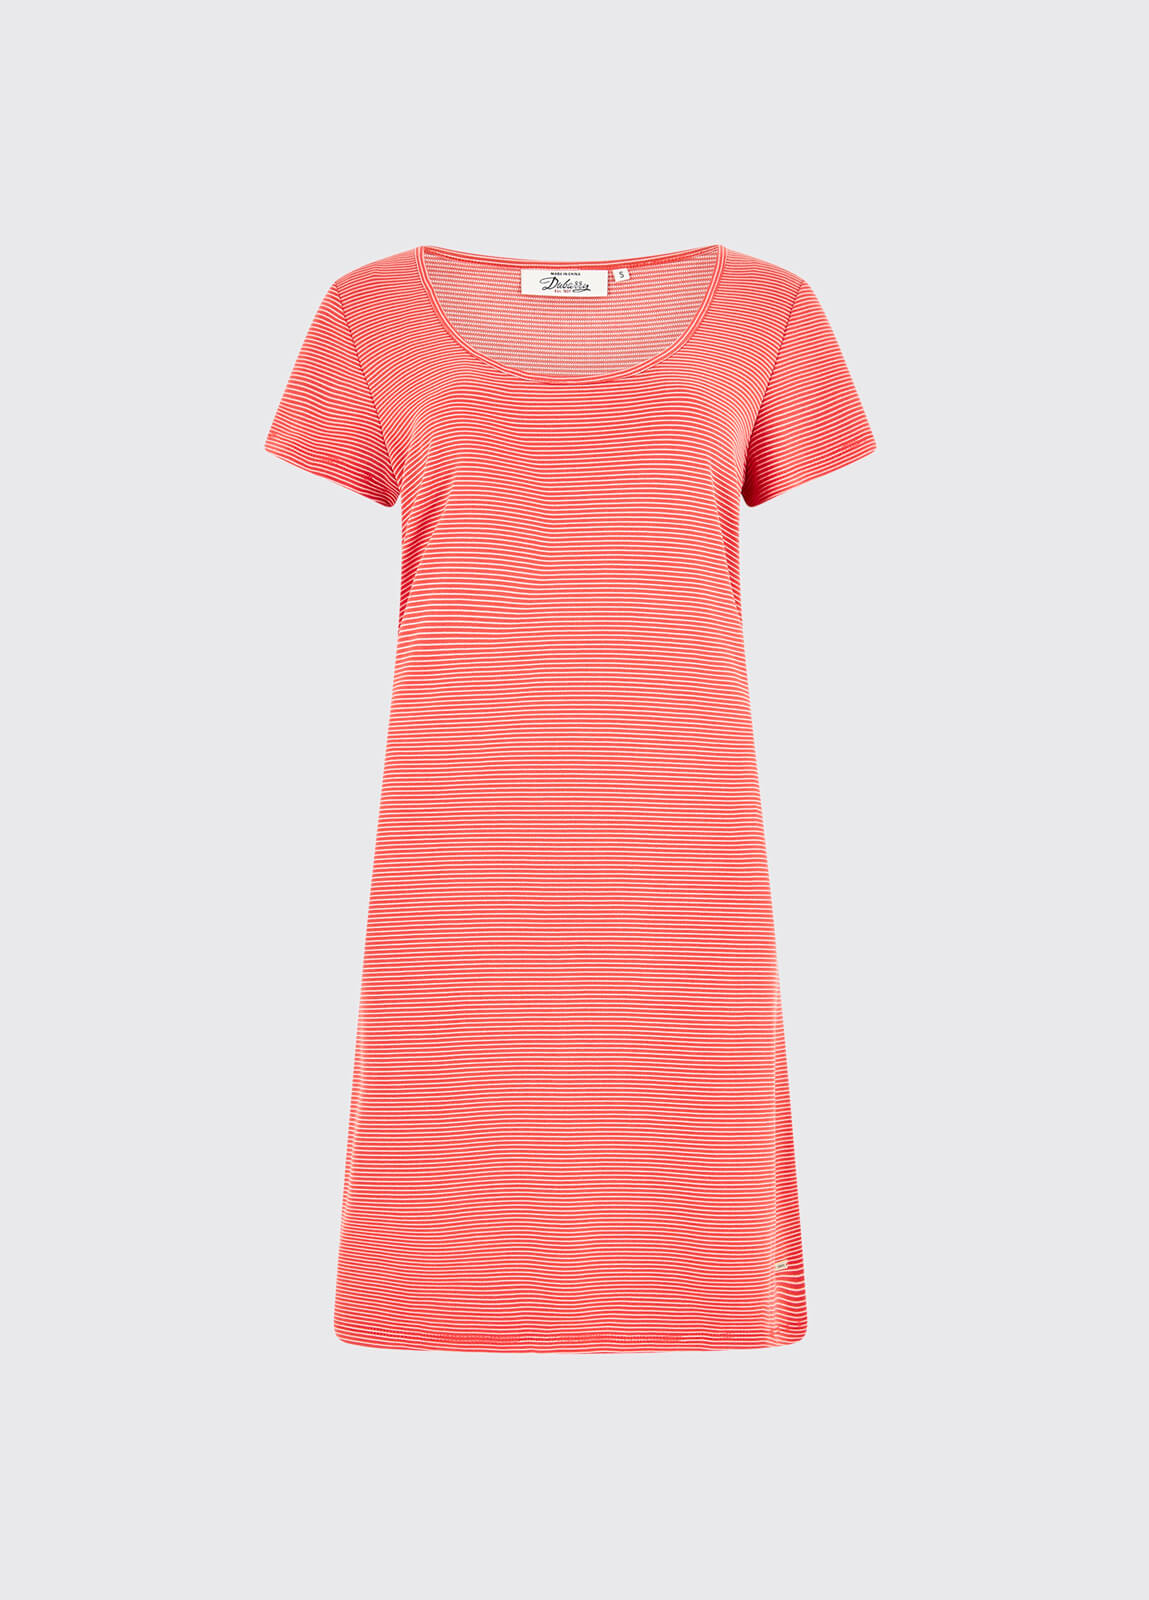 Suncroft Dress - Poppy